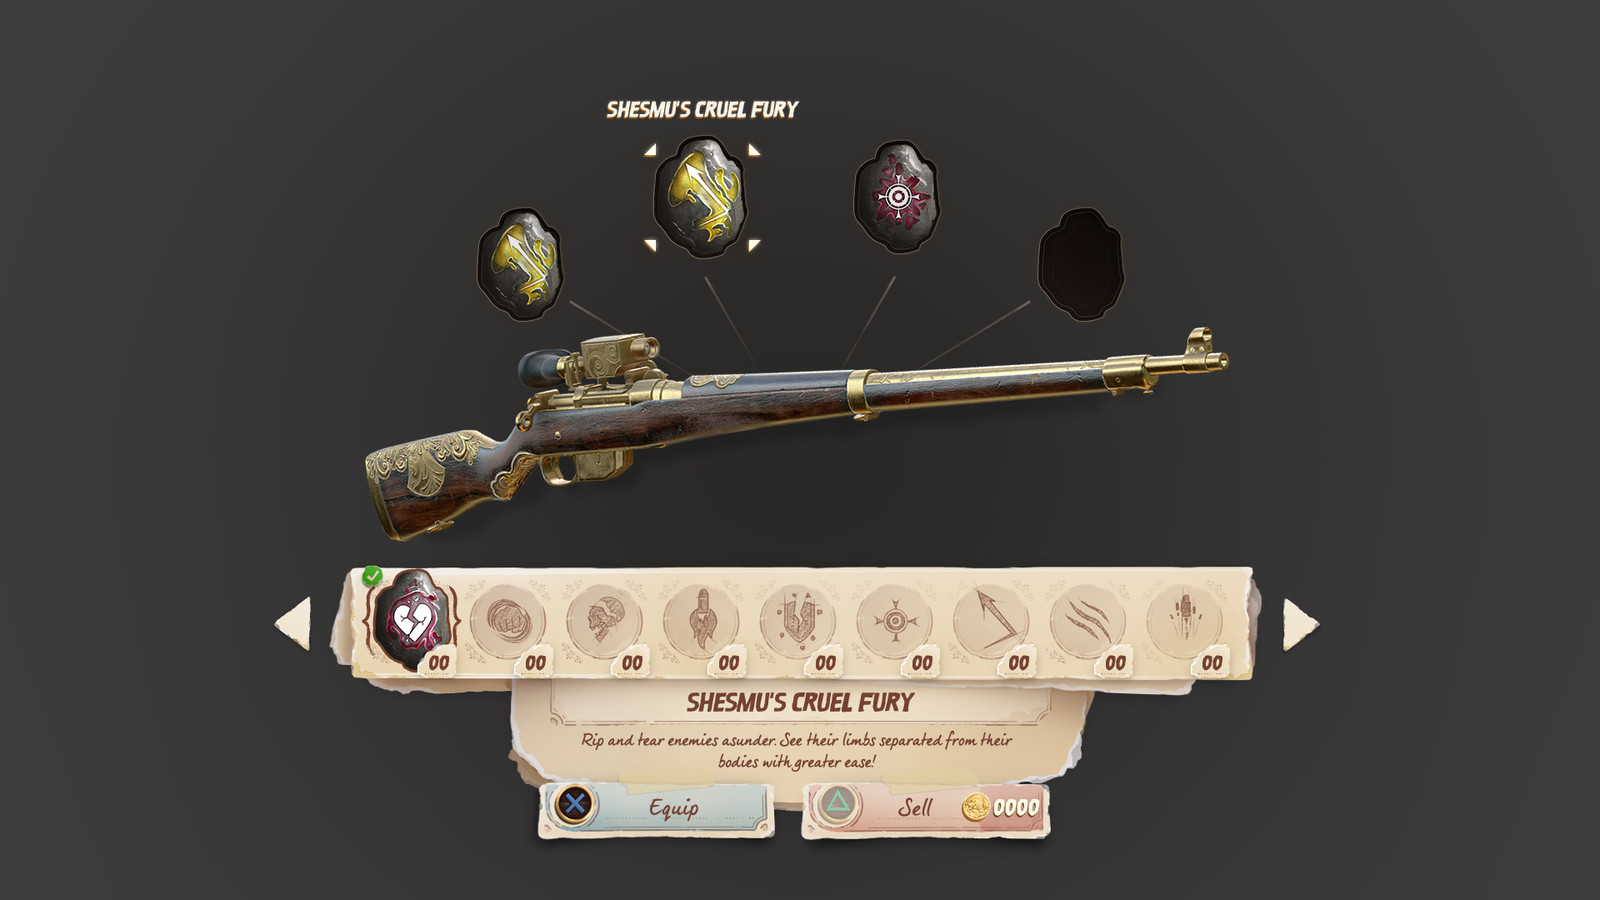 The Weapon Upgrades sub-screen, where the player can equip upgrade gems that they've found and collected throughout the game.